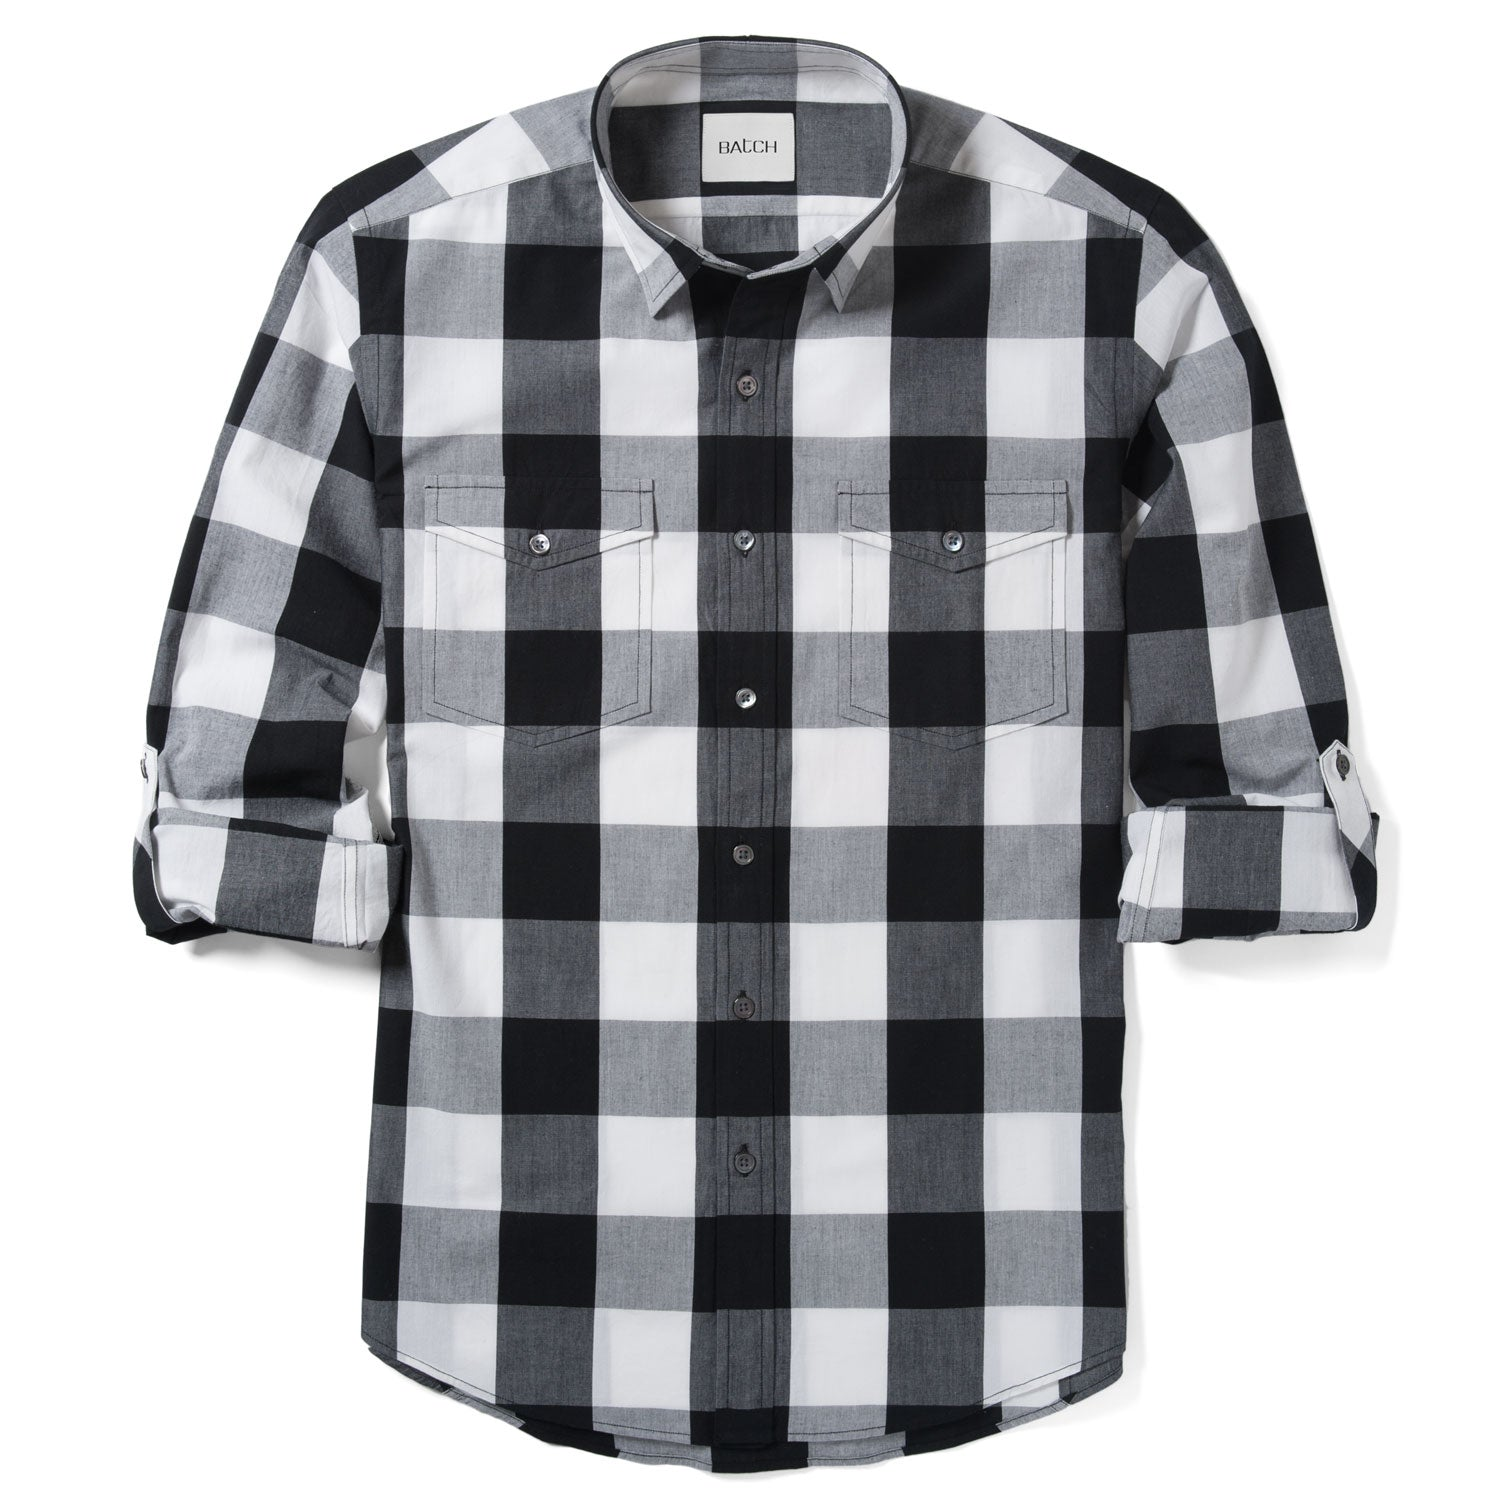 Engineer Utility Shirt – Black Crisp Check